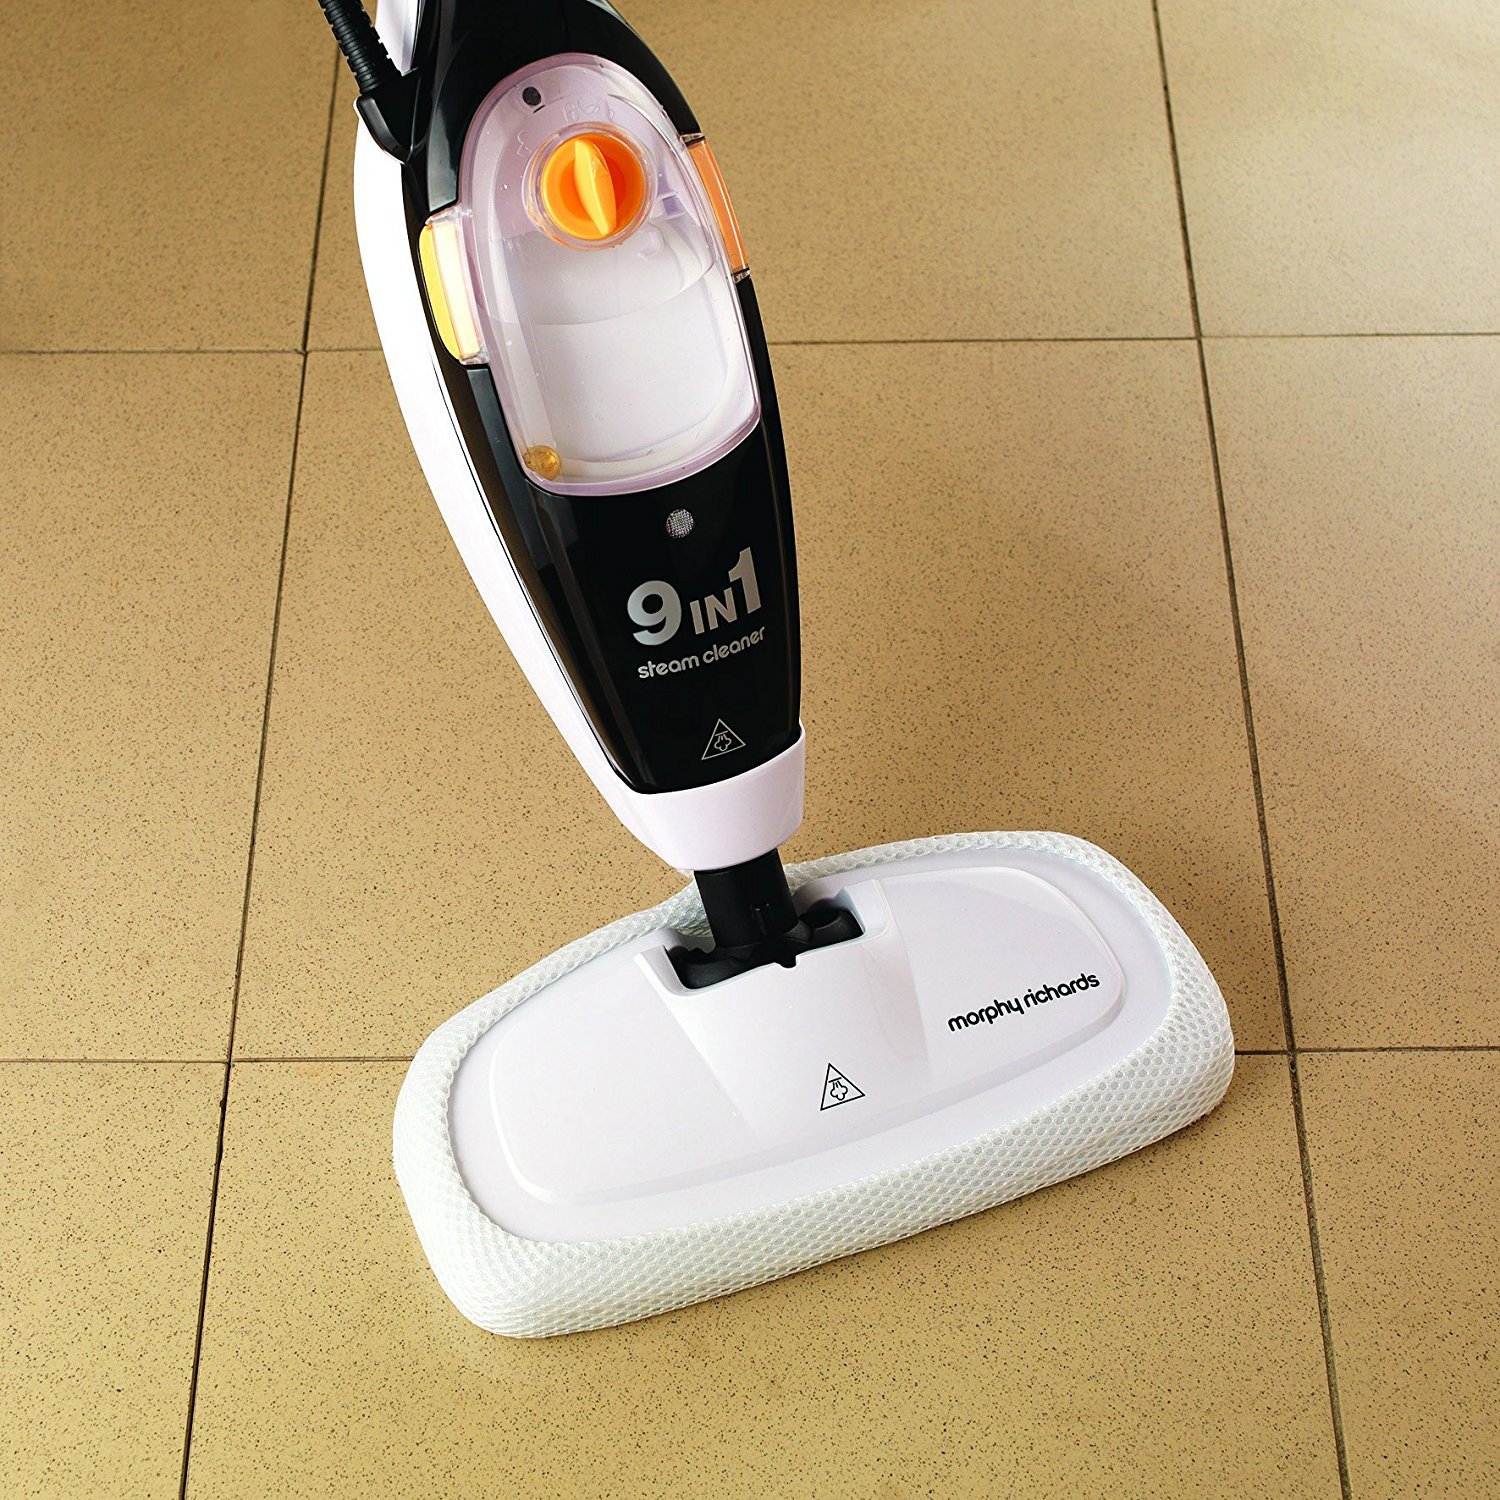 morphy richards 9 in 1 steam mop joyce s home centre new. Black Bedroom Furniture Sets. Home Design Ideas